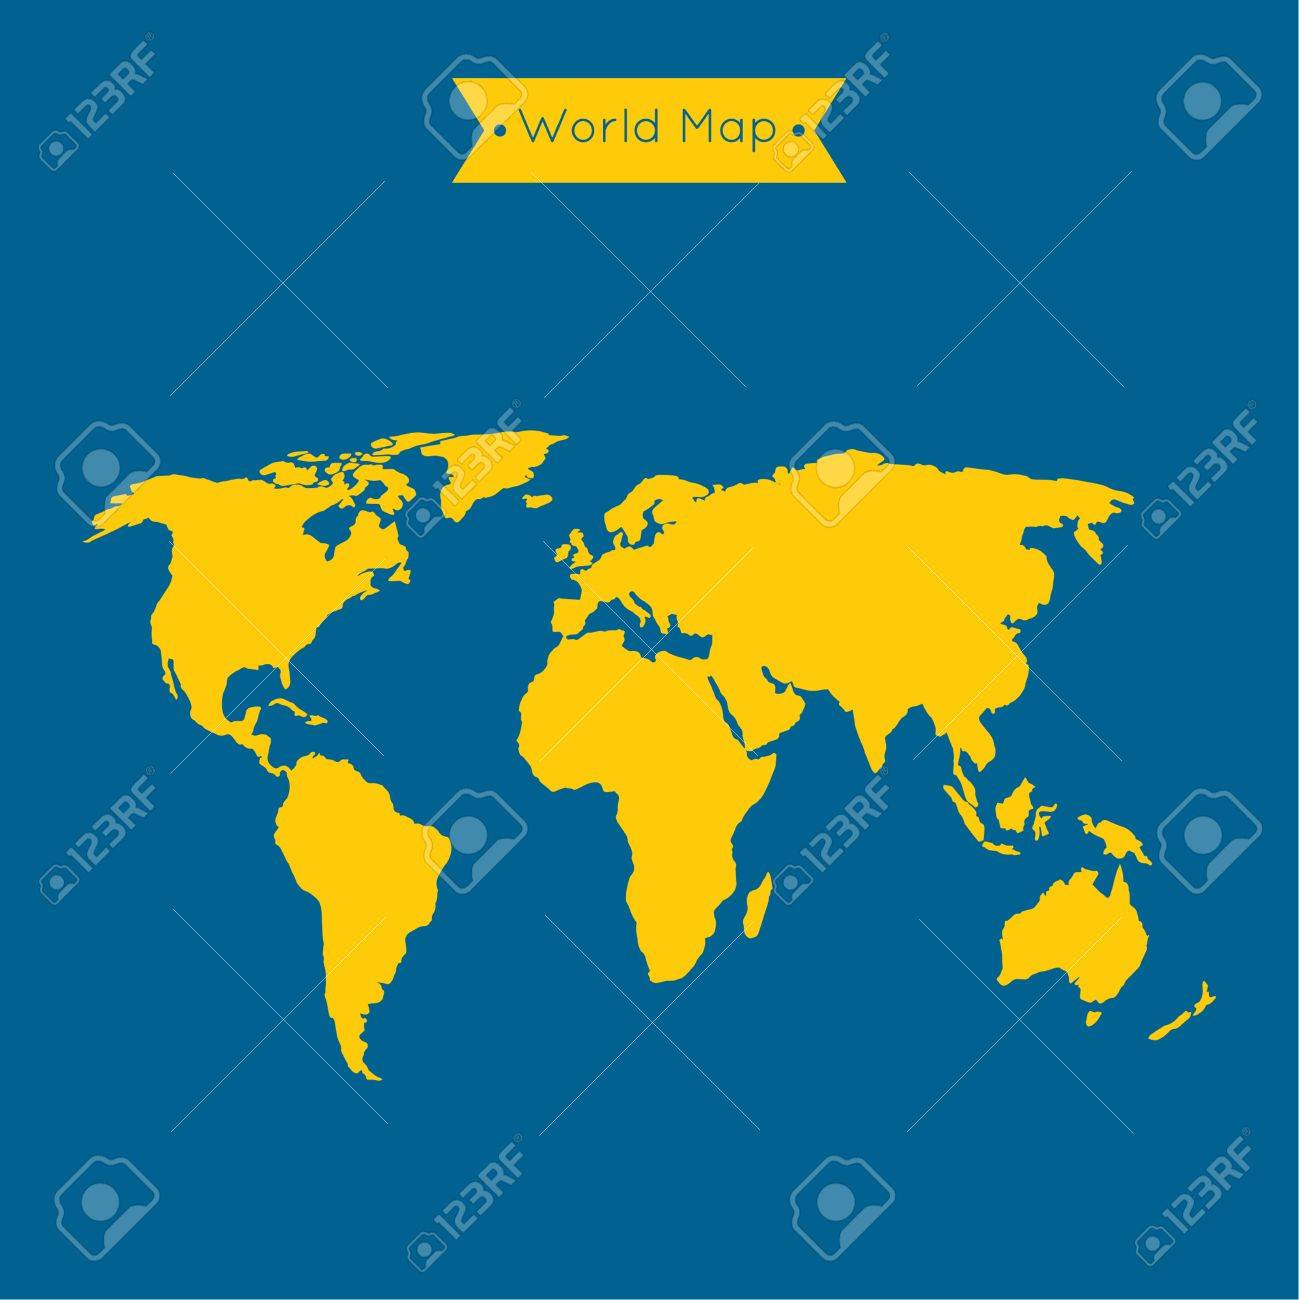 World map and ribbon a flat design for web and mobile app royalty vector world map and ribbon a flat design for web and mobile app gumiabroncs Image collections